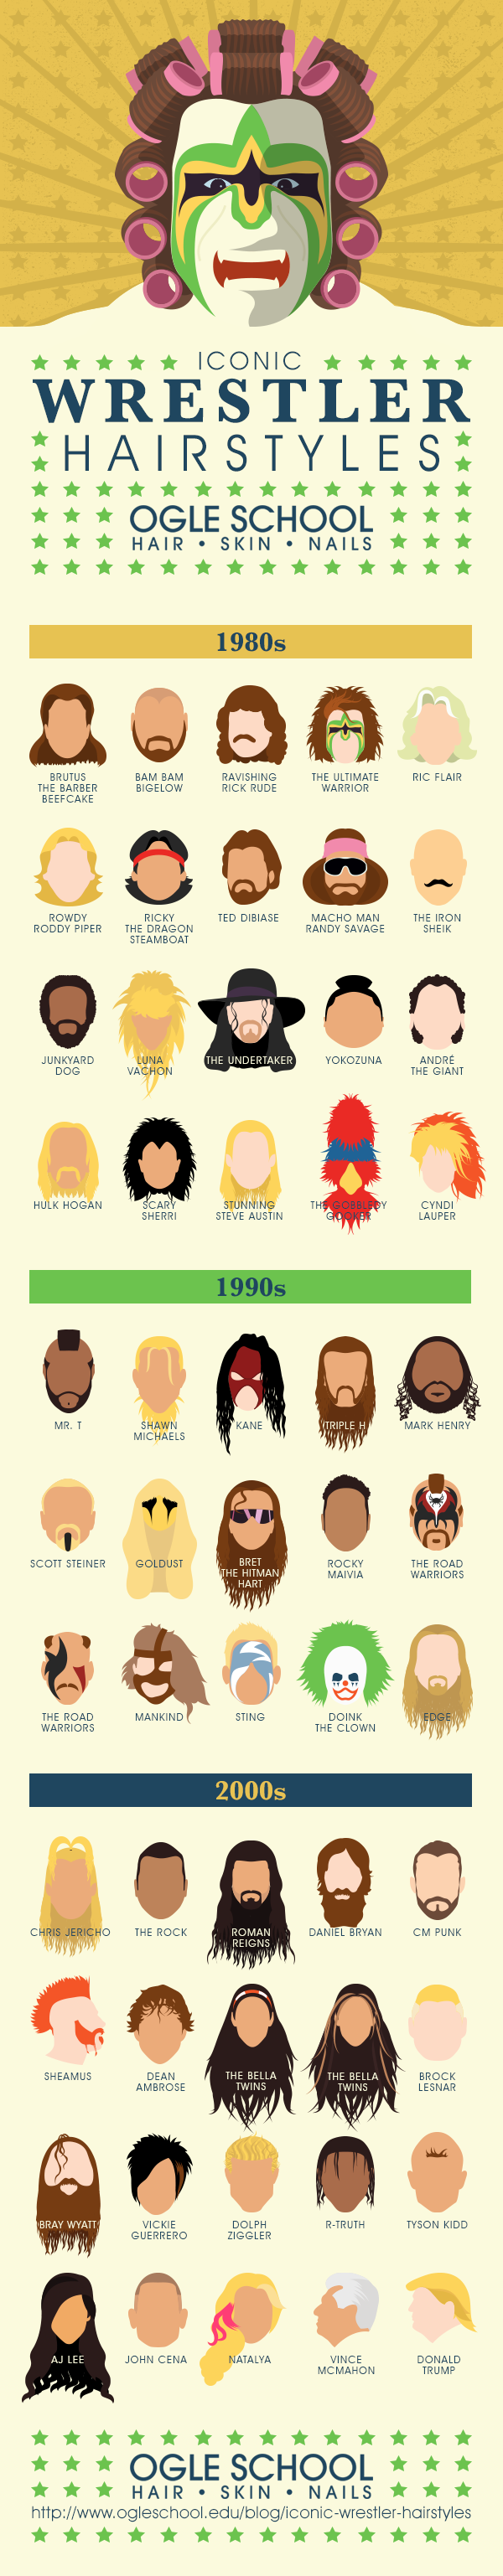 Crazy Haircuts of Professional Wrestling